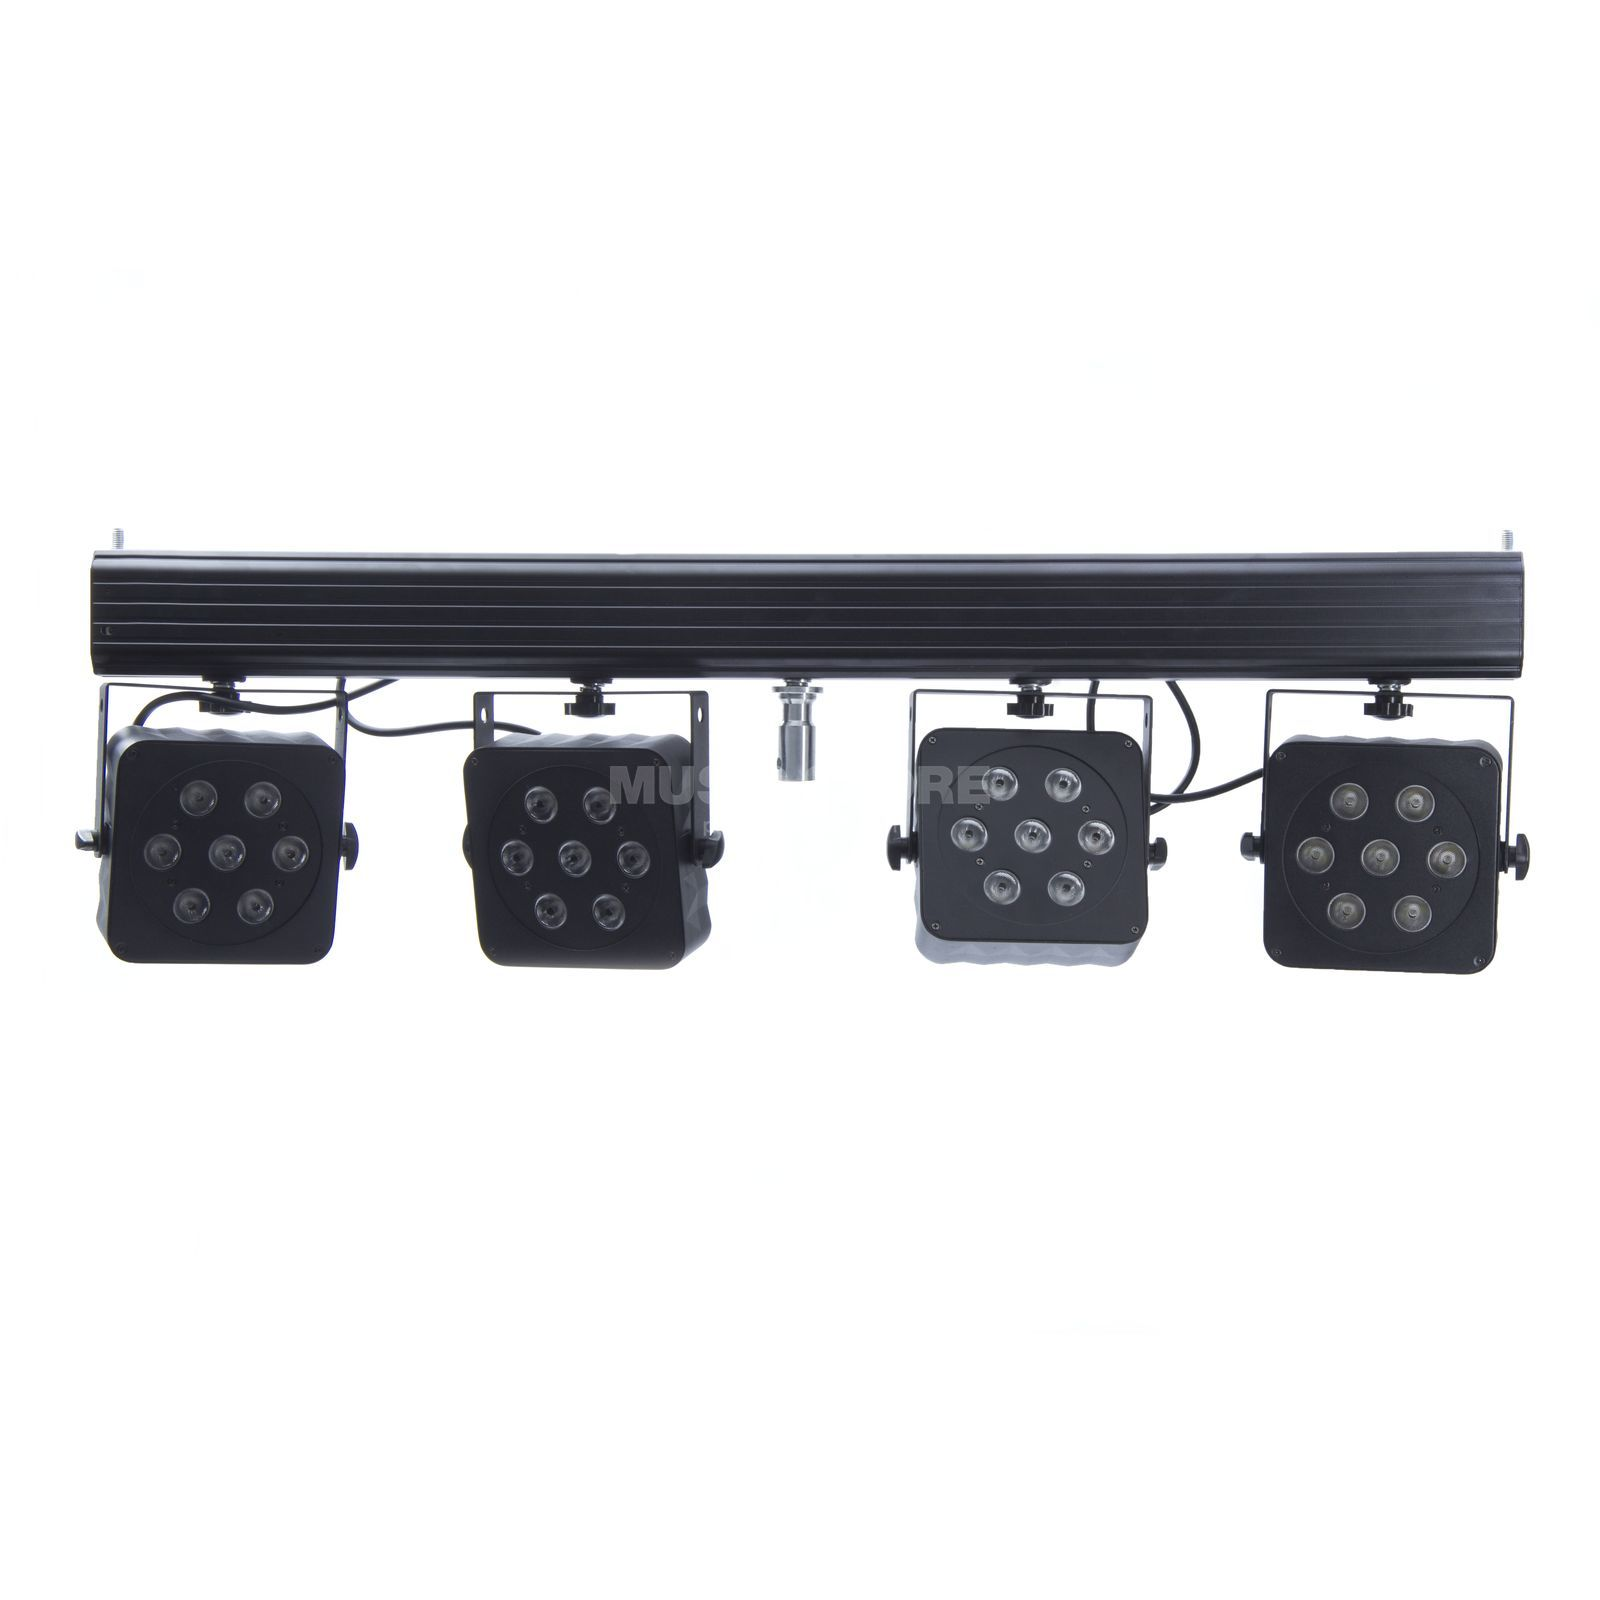 lightmaXX Platinum CLS-3 QUAD-LED incl. IR-Remote, 28x8W RGBW Produktbillede